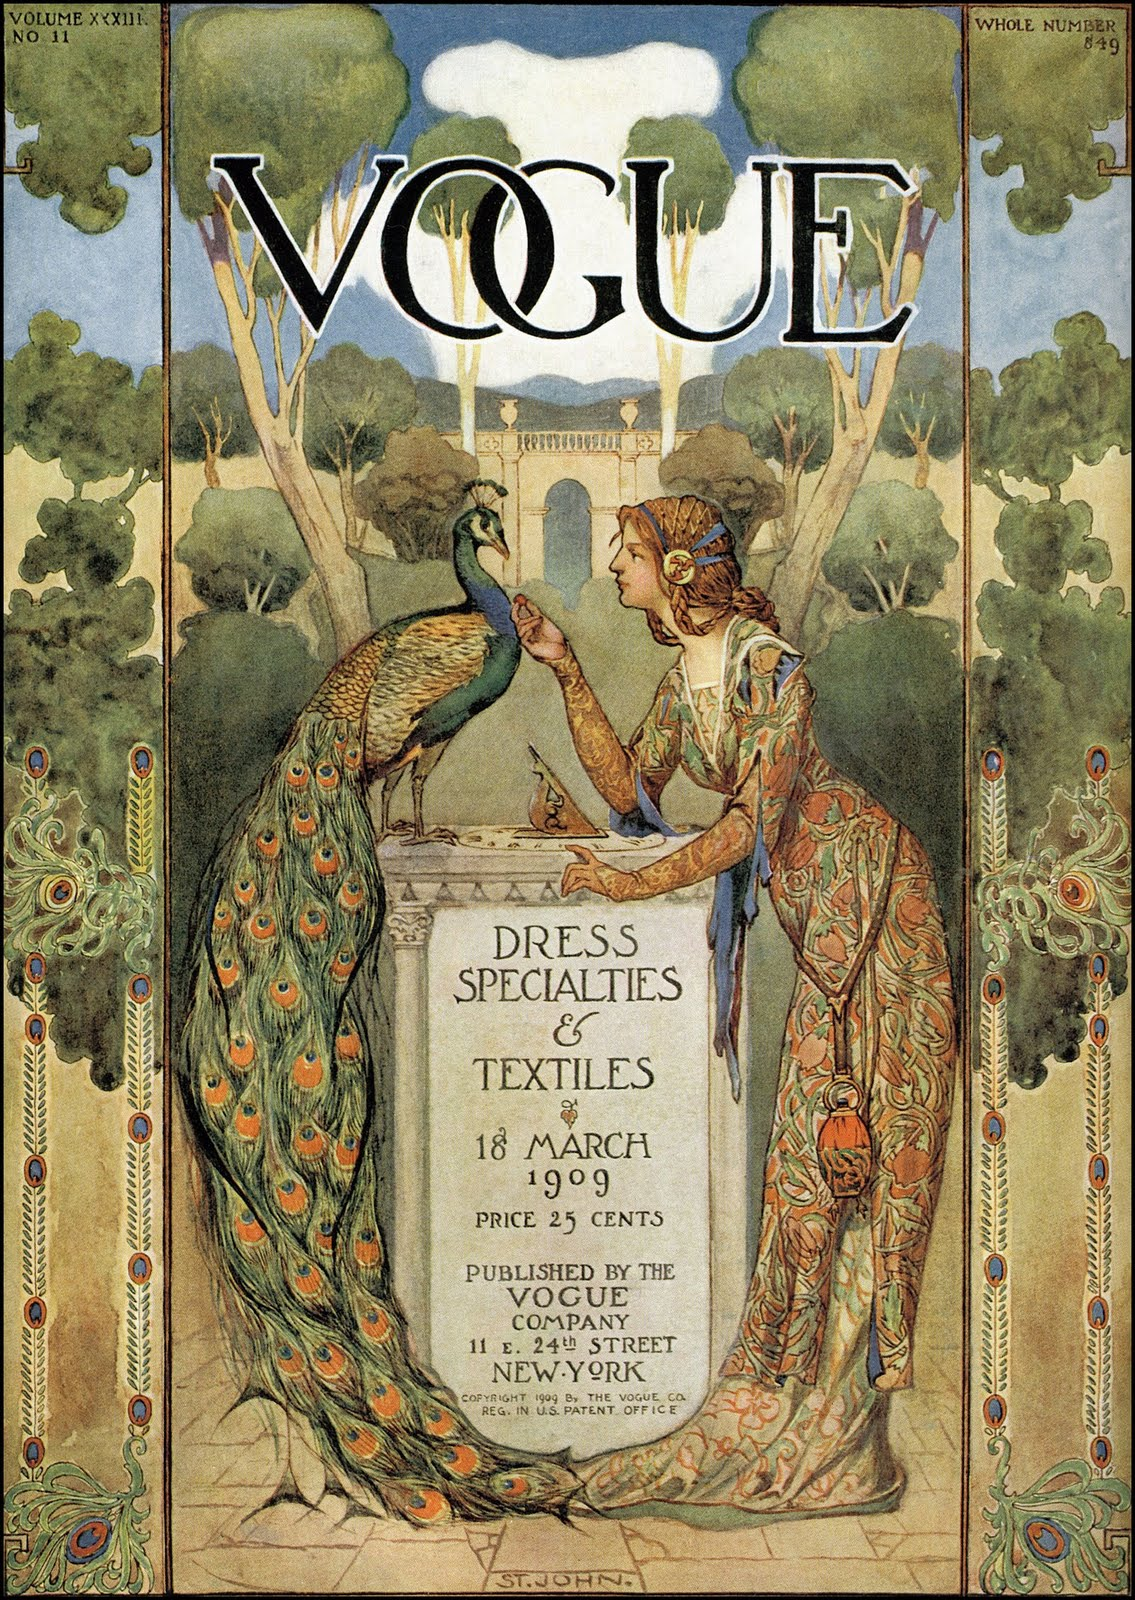 J. Allen St. John, Vogue cover, March 1909 issue, 1909. The Pictorial Arts.